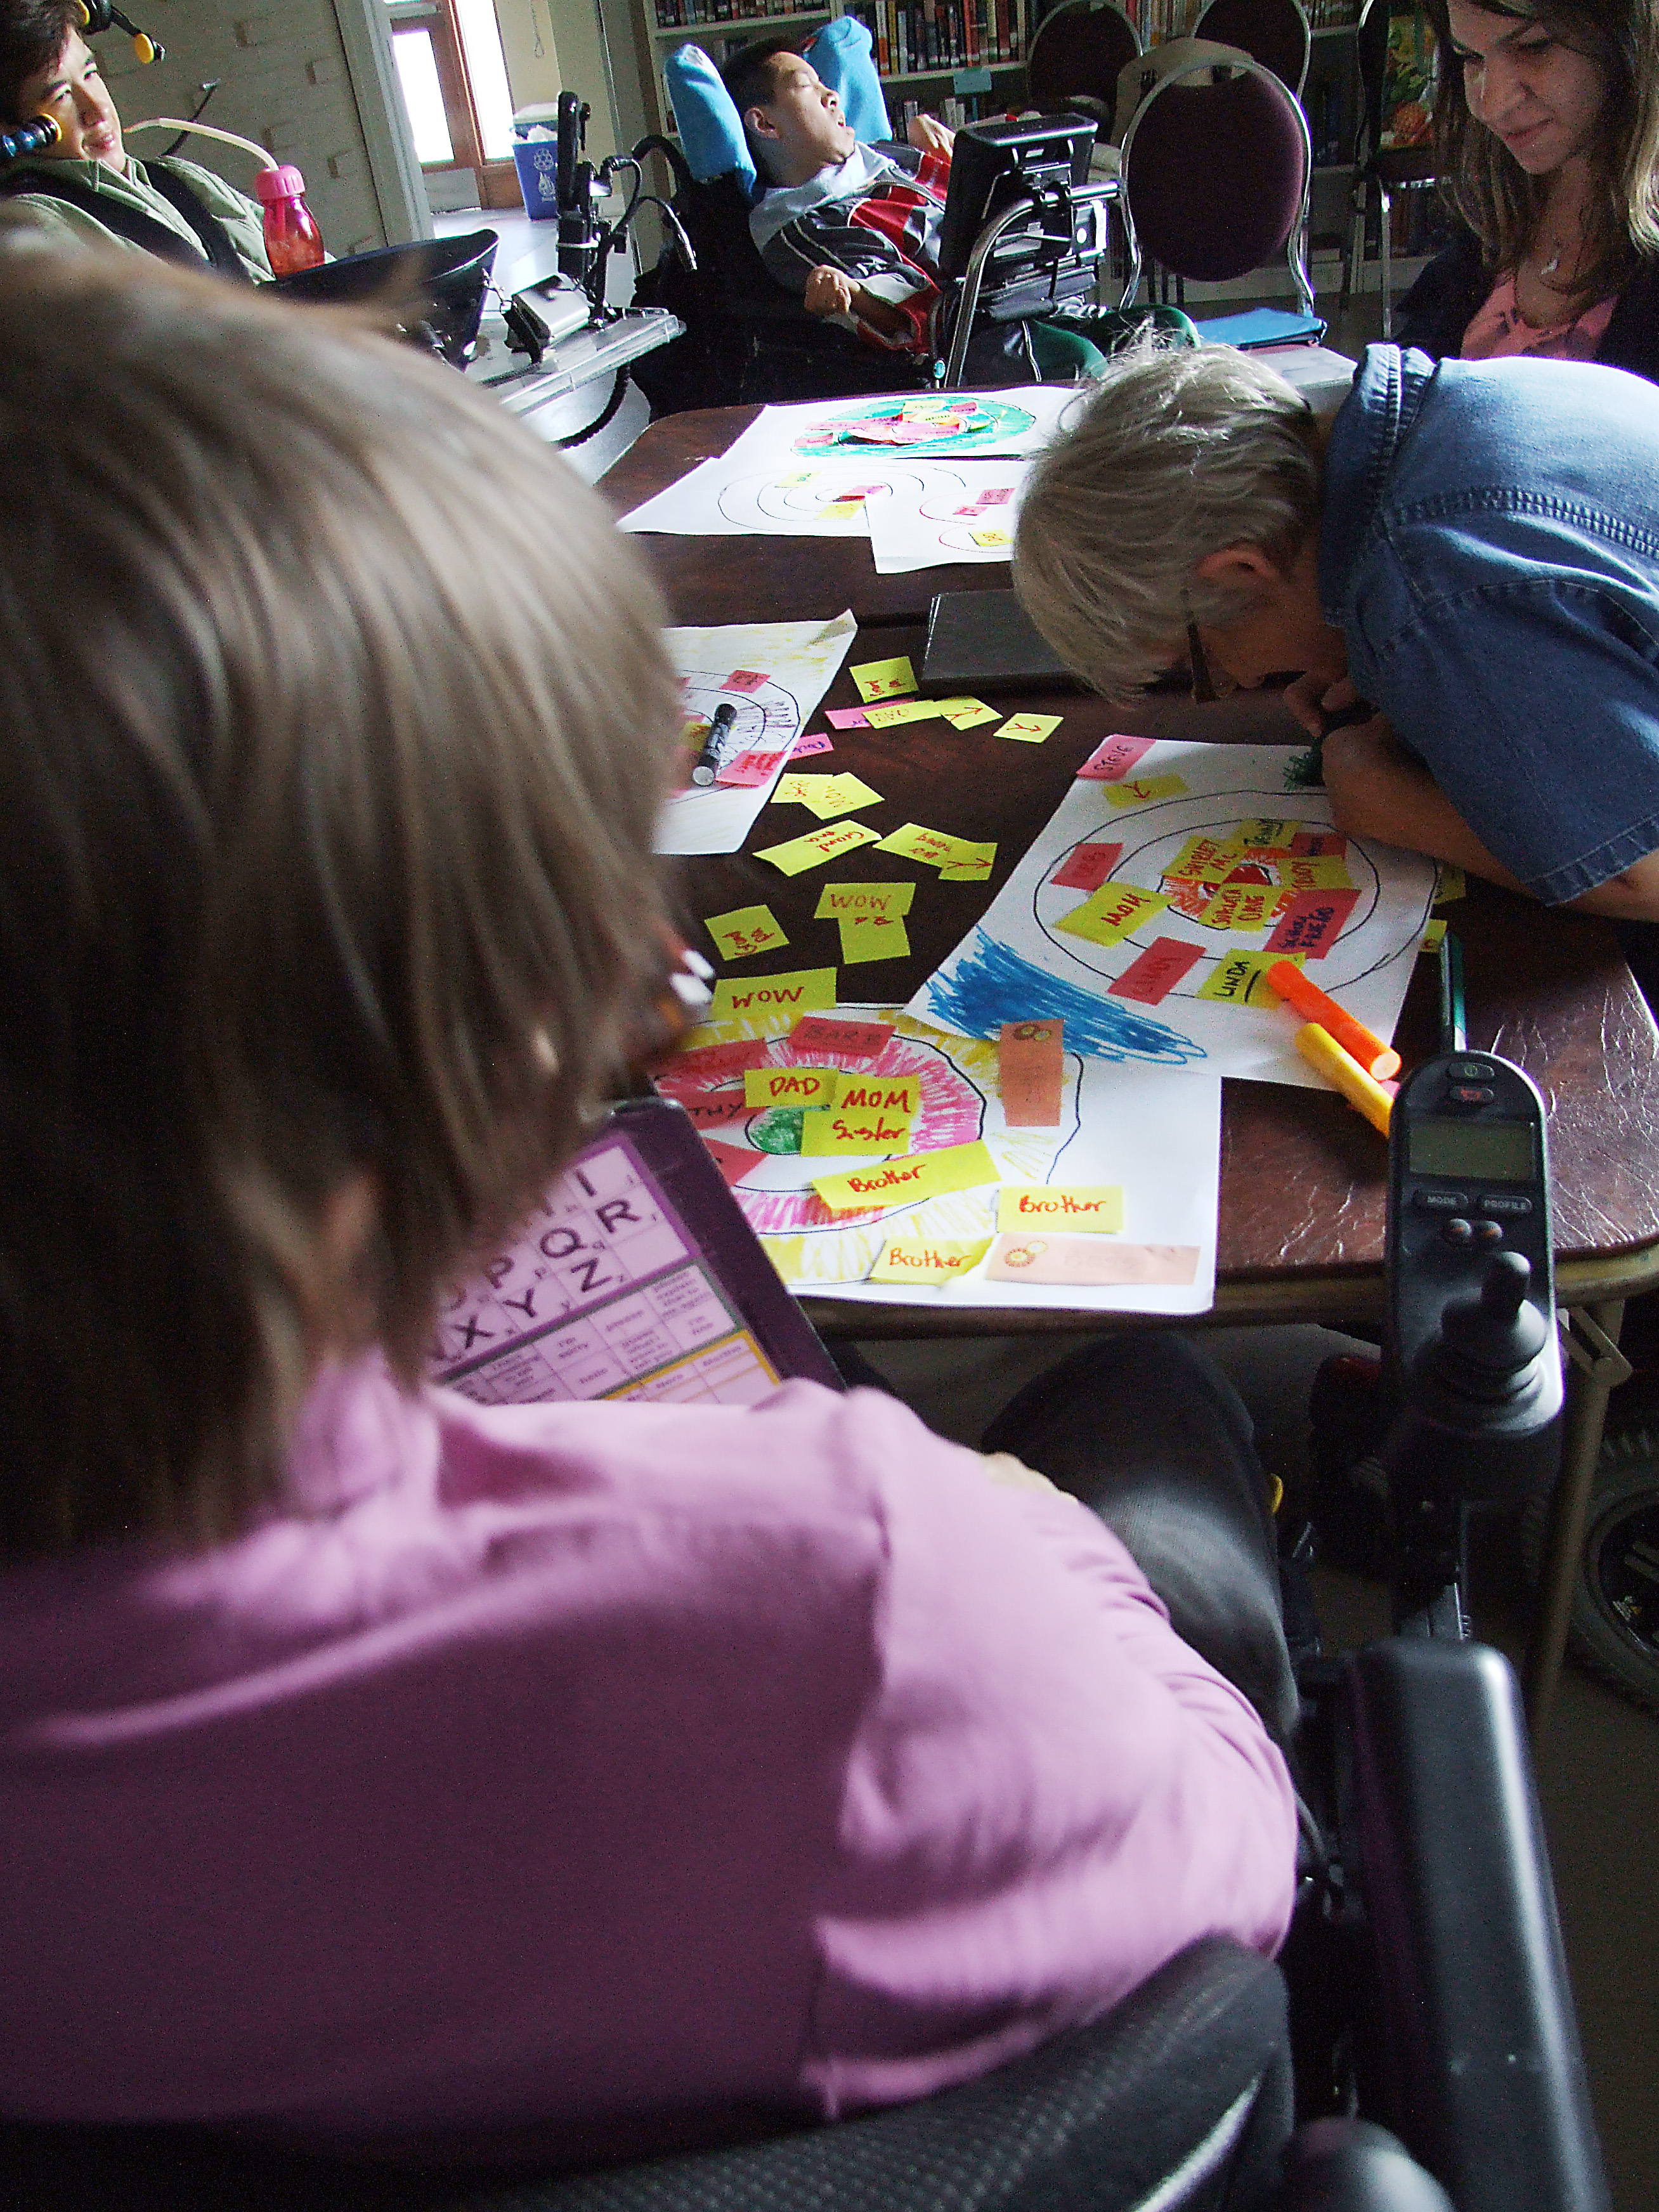 woman in blue shirt sitting in wheelchair leans over table to draw on paper